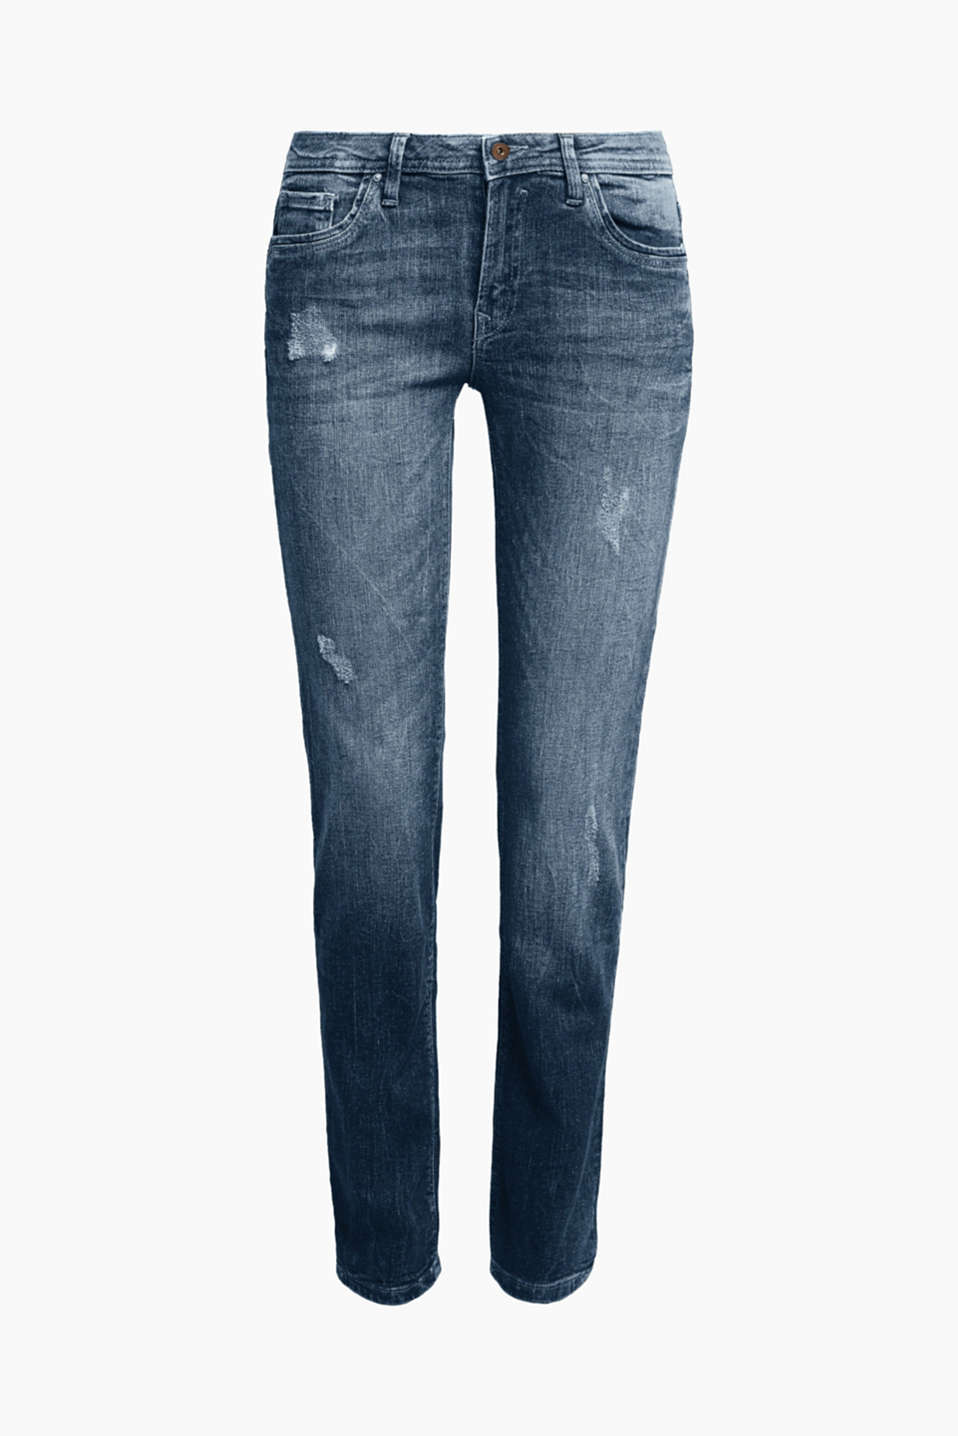 The perfect essential piece: casual, garment-washed jeans with high-quality organic cotton and added stretch.